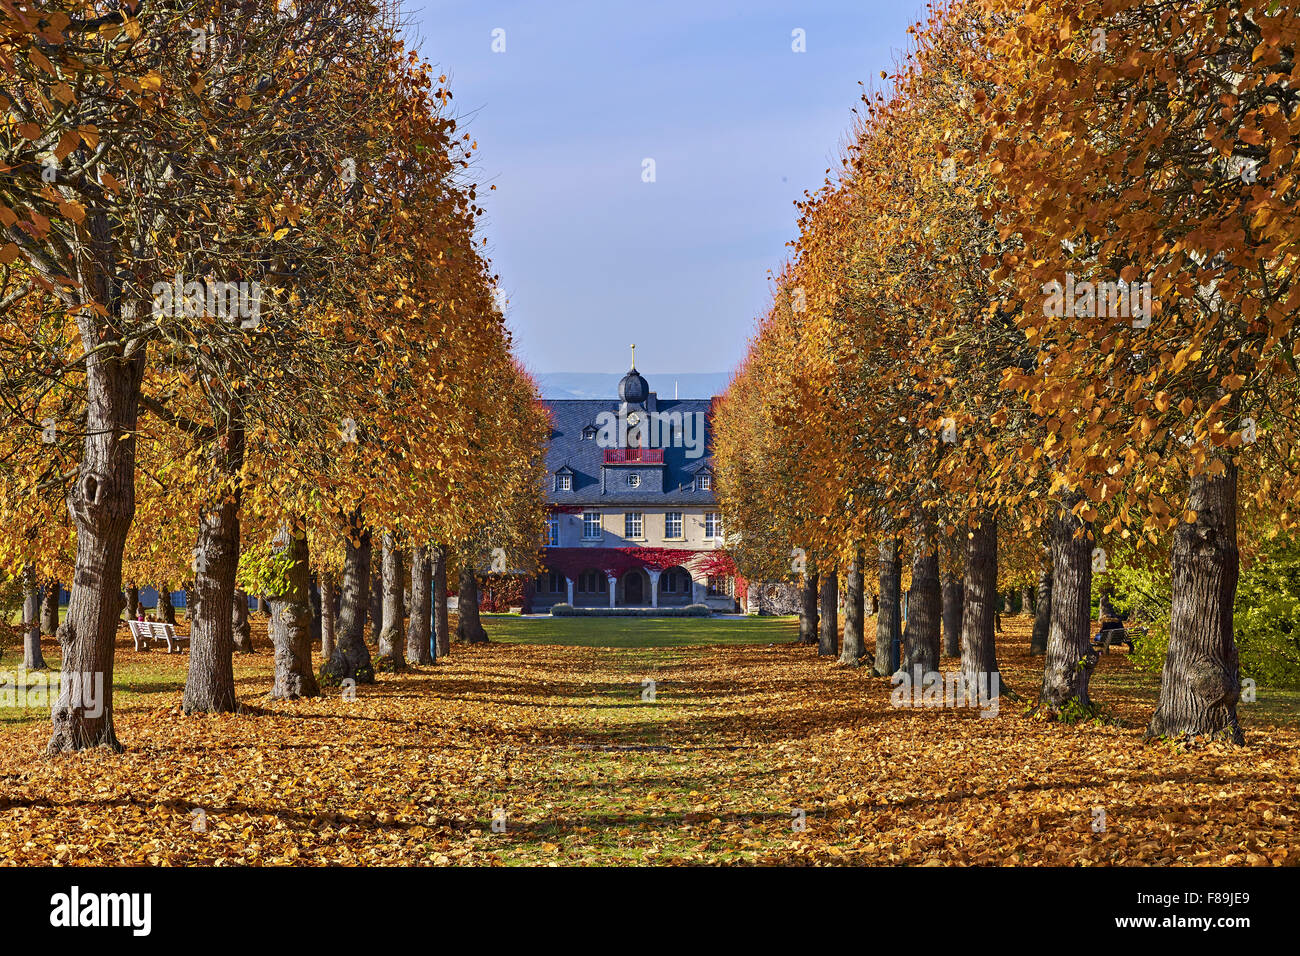 Park of Villa Bergfried, Saalfeld, Thuringia, Germany Stock Photo